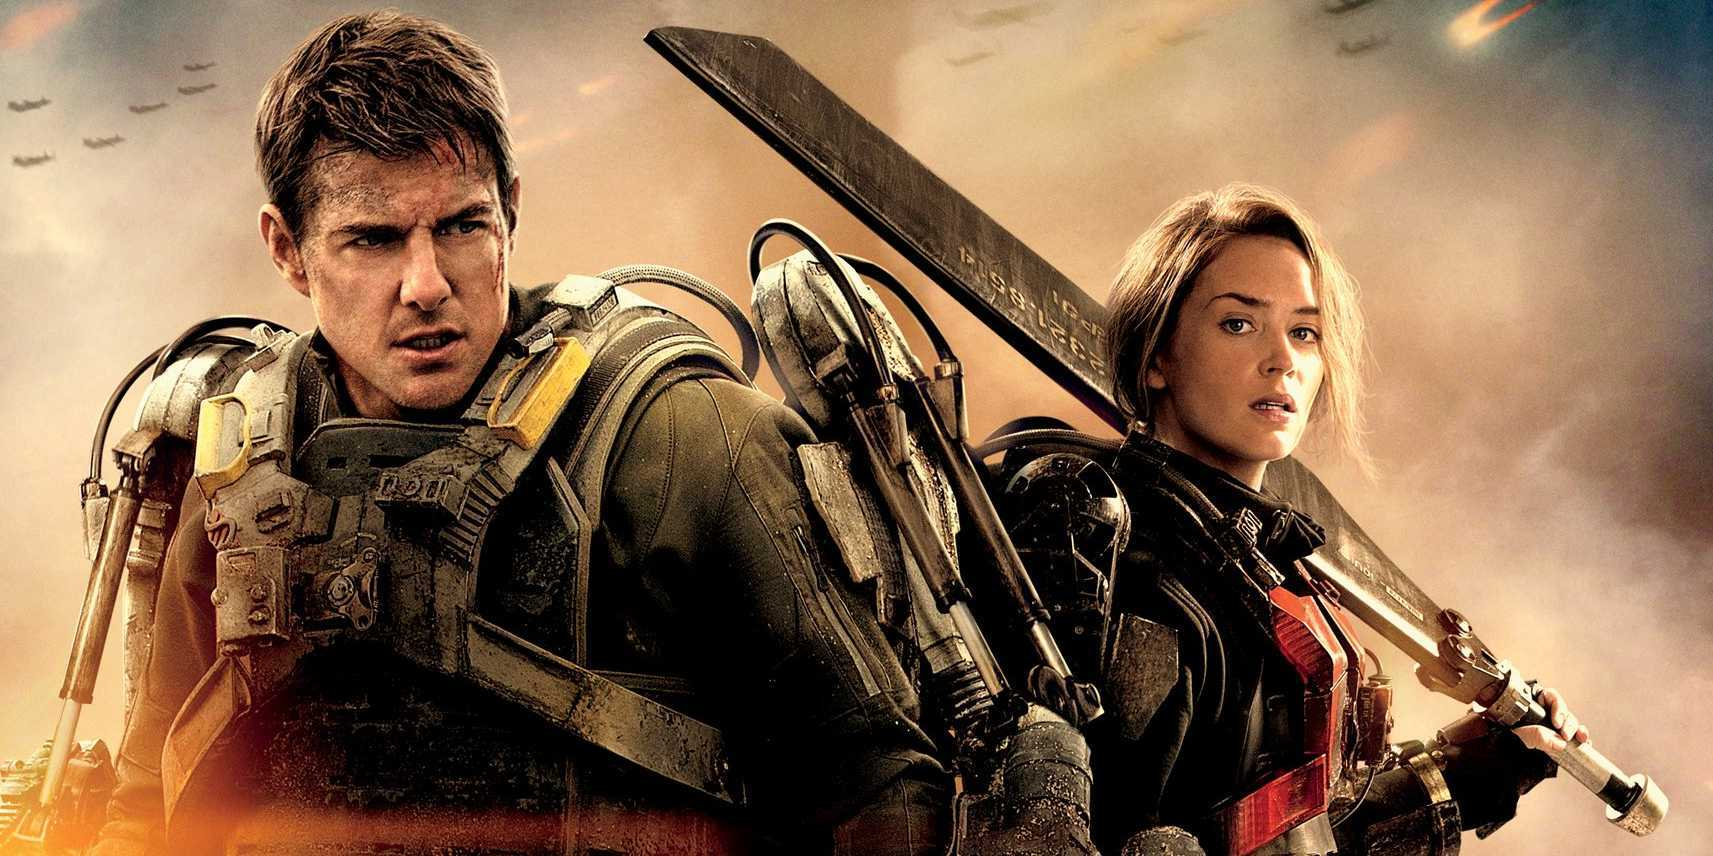 Edge of Tomorrow 2 Release Date, Trailer, Cast, Plot and More Details on the Tom Cruise Movie Sequel